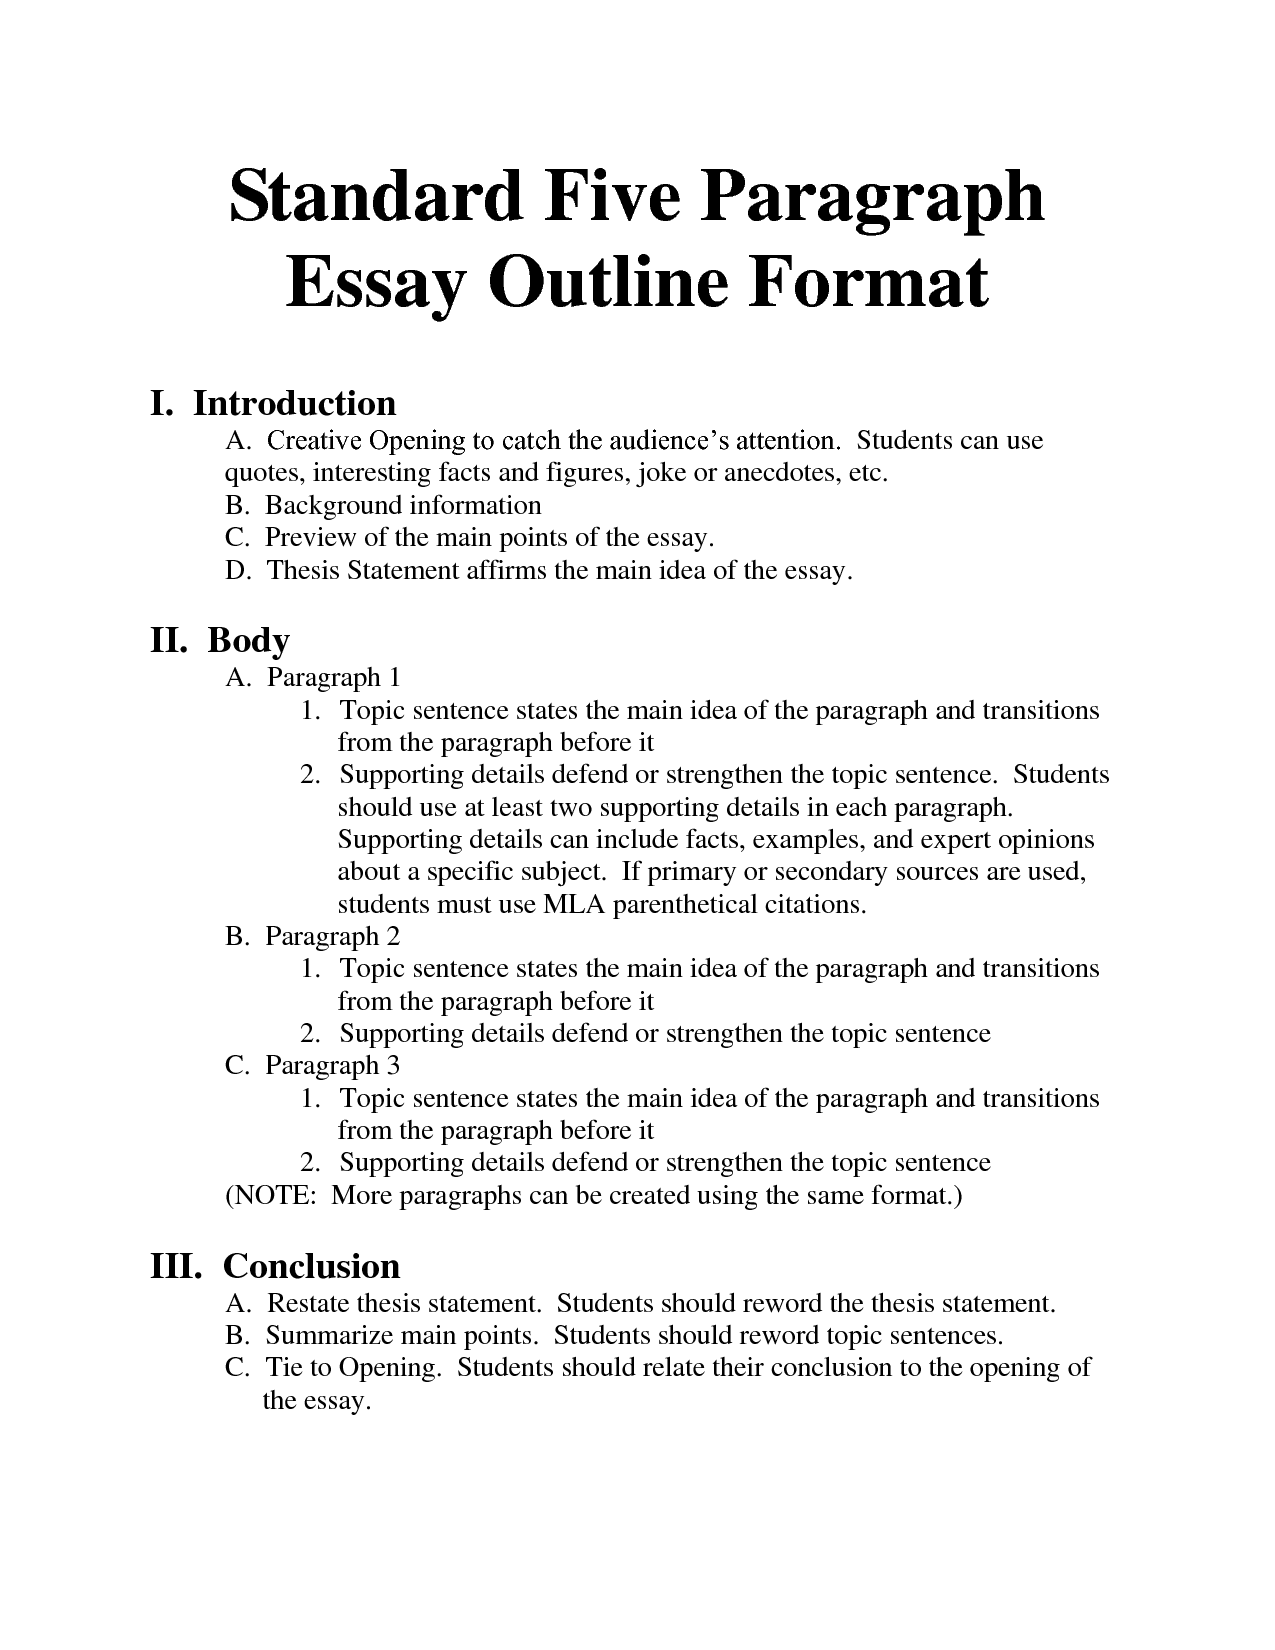 How to write a proposal essay outline essay outline example resume